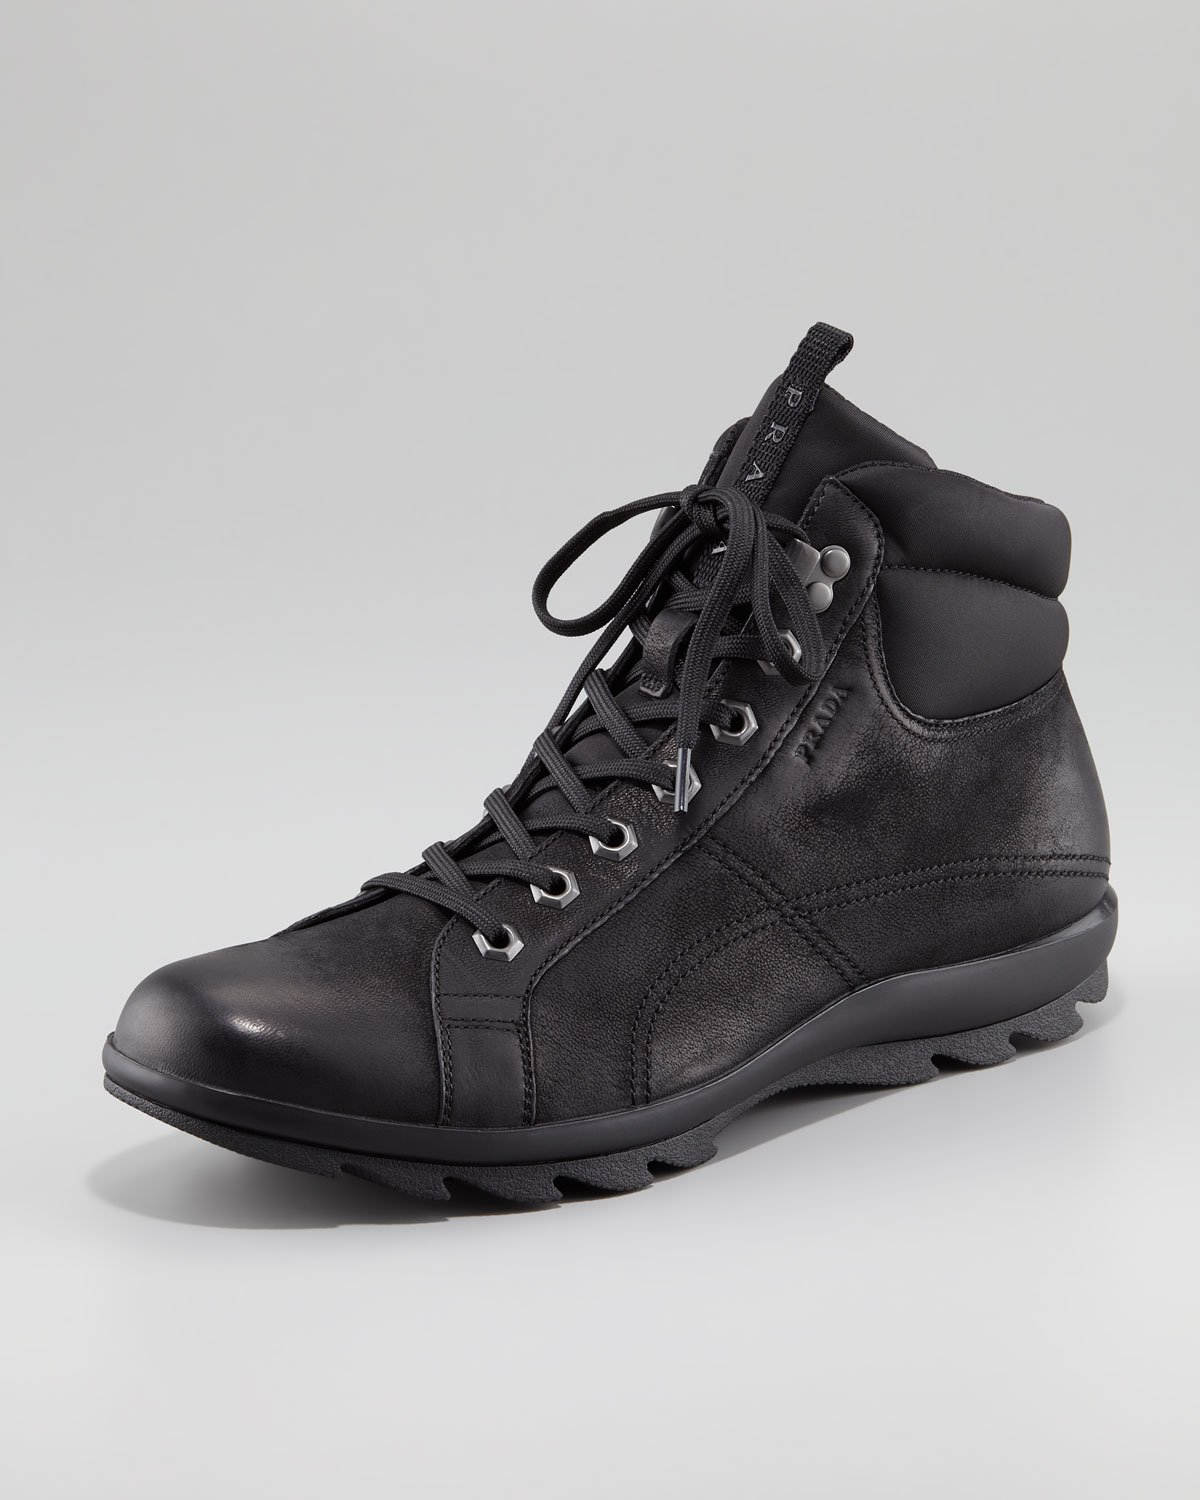 Prada Nubuck Leather Hiker Boot In Black For Men Lyst